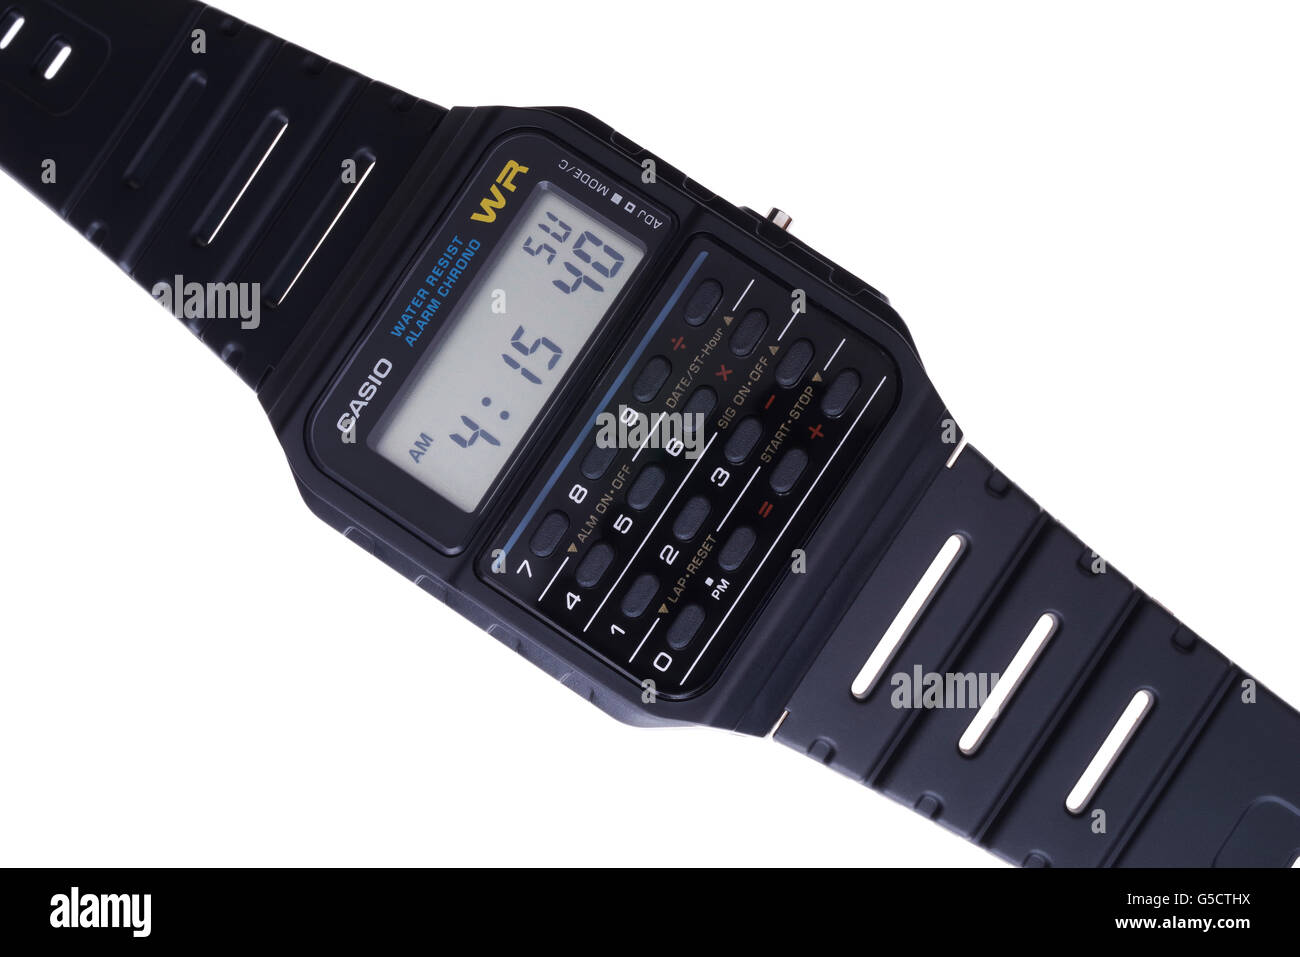 Casio databank calculator watch CA-53W-1Z 80's icon - Stock Image